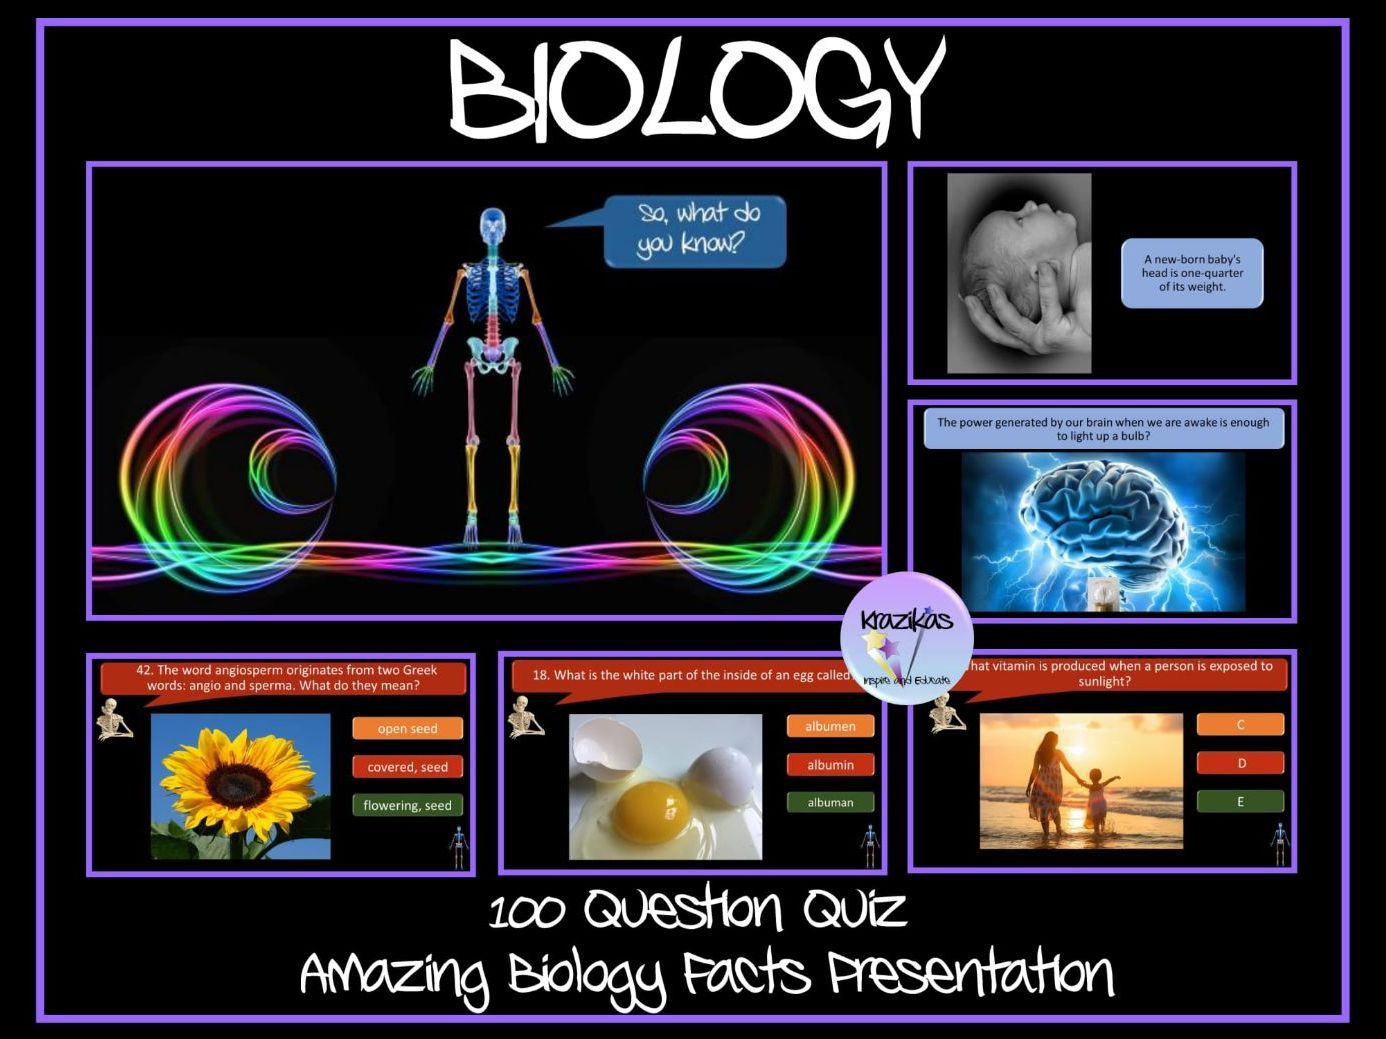 Biology Quiz and Amazing Biology Facts